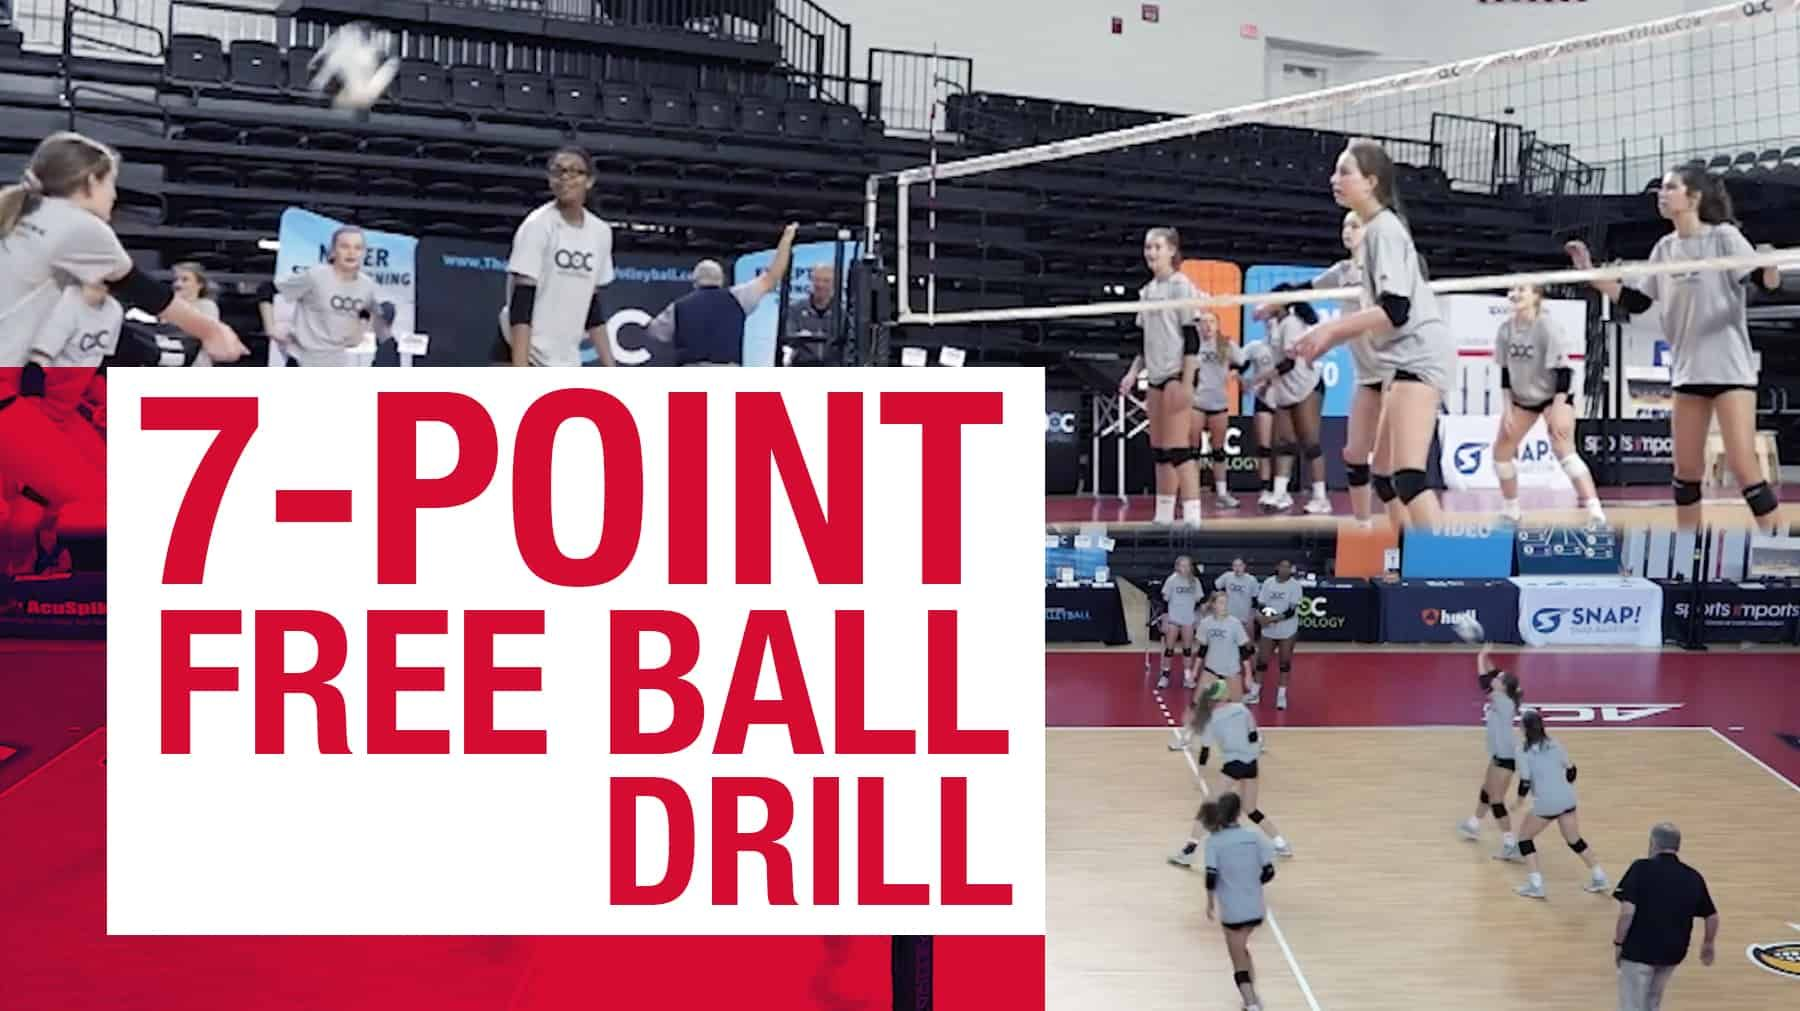 7 Point Free Ball Drill The Art Of Coaching Volleyball Coaching Volleyball Volleyball Drills Volleyball Skills